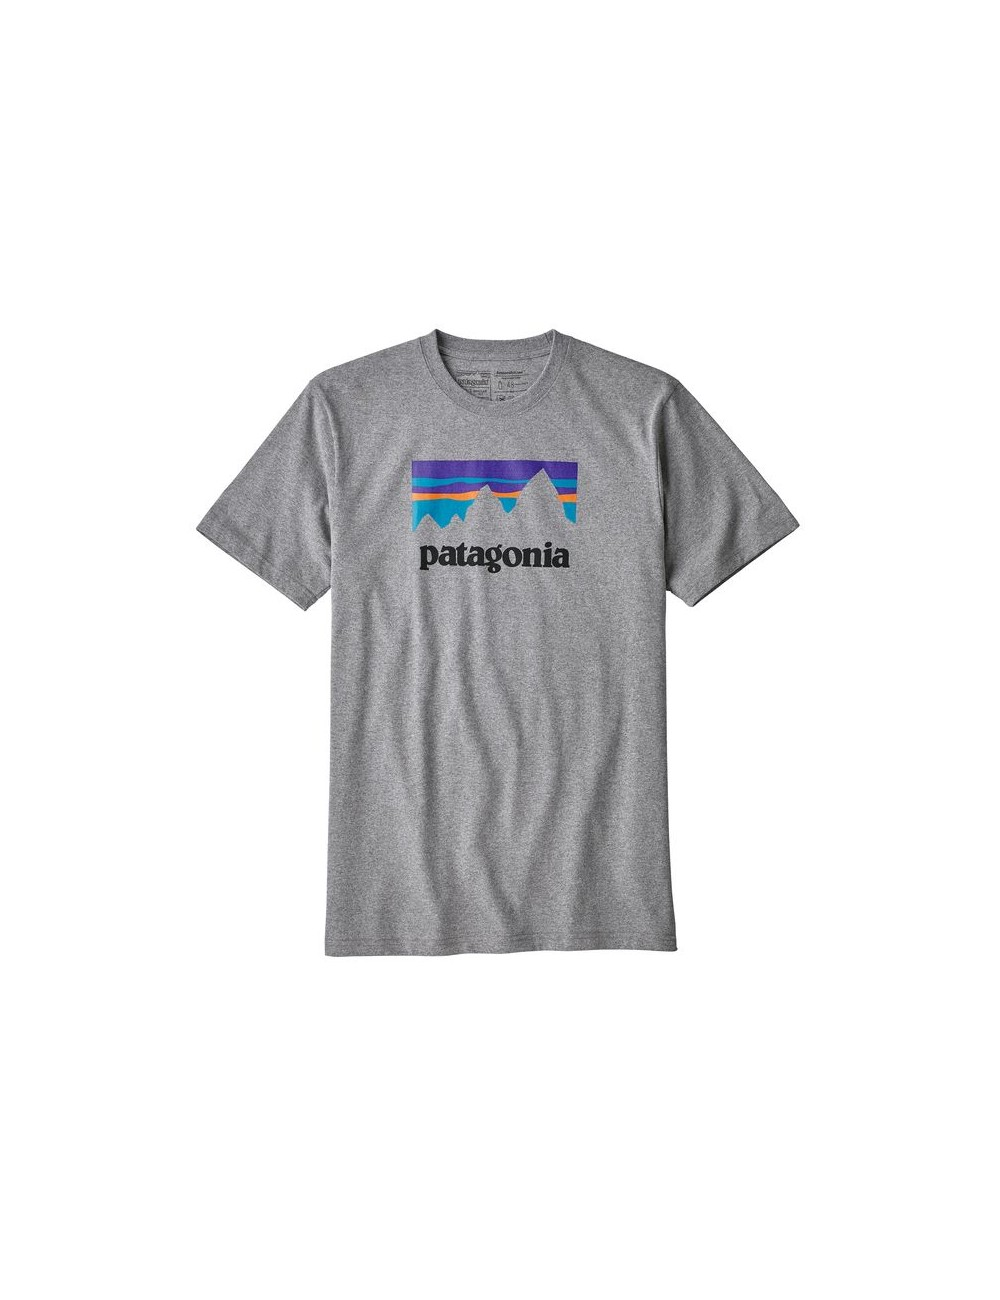 Patagonia Shop sticker responsabili-tee - 39175 | Shapestore.it